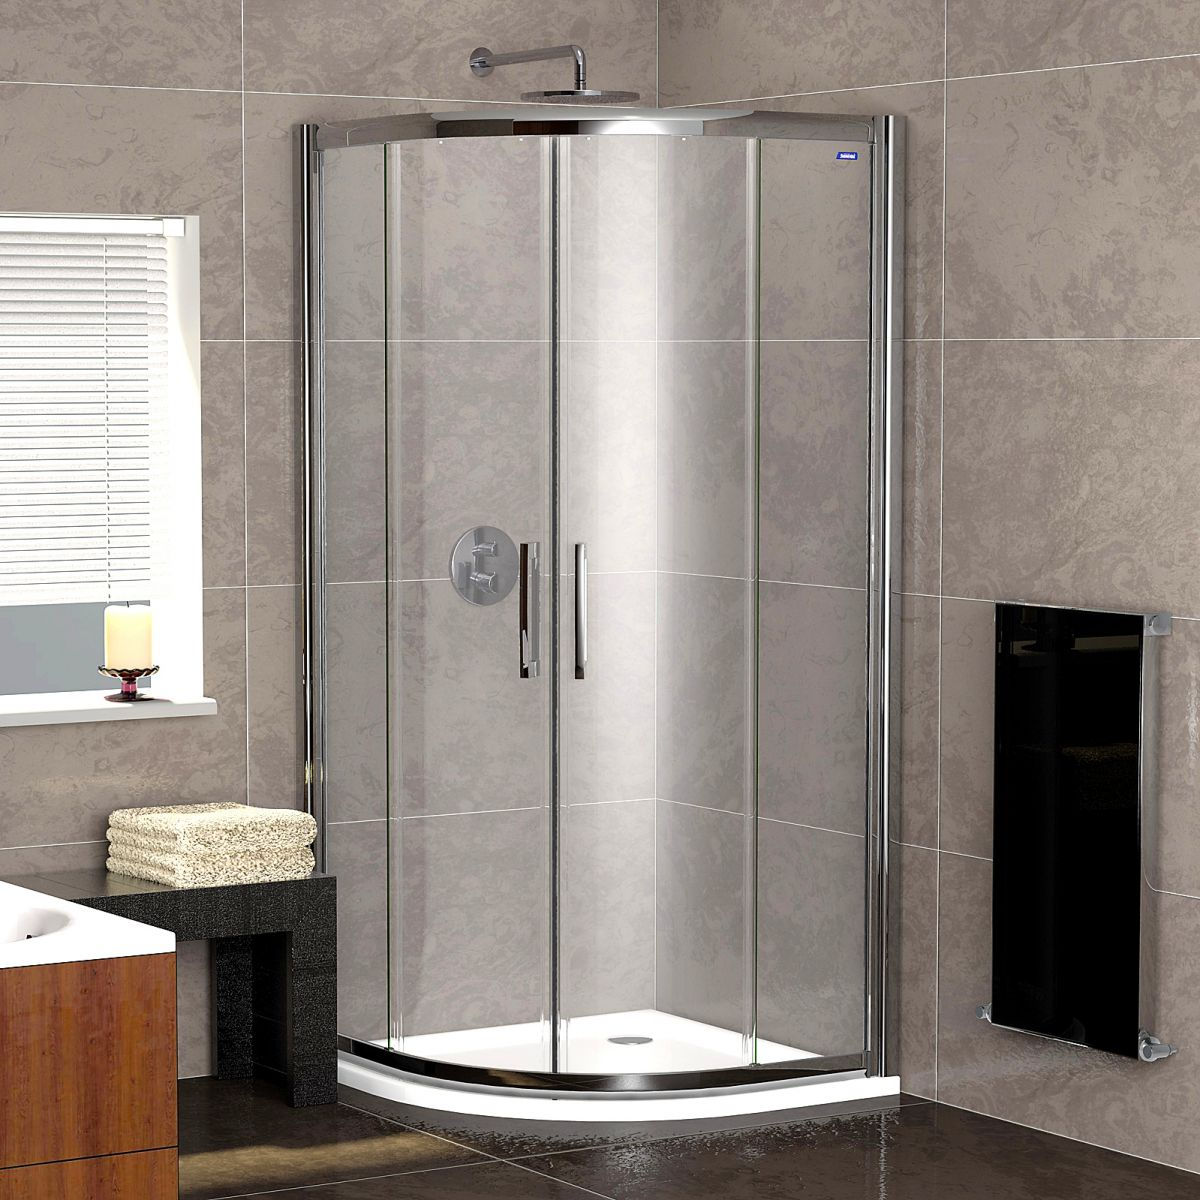 Showerlux legacy twin door quadrant shower enclosure uk for Door quadrant